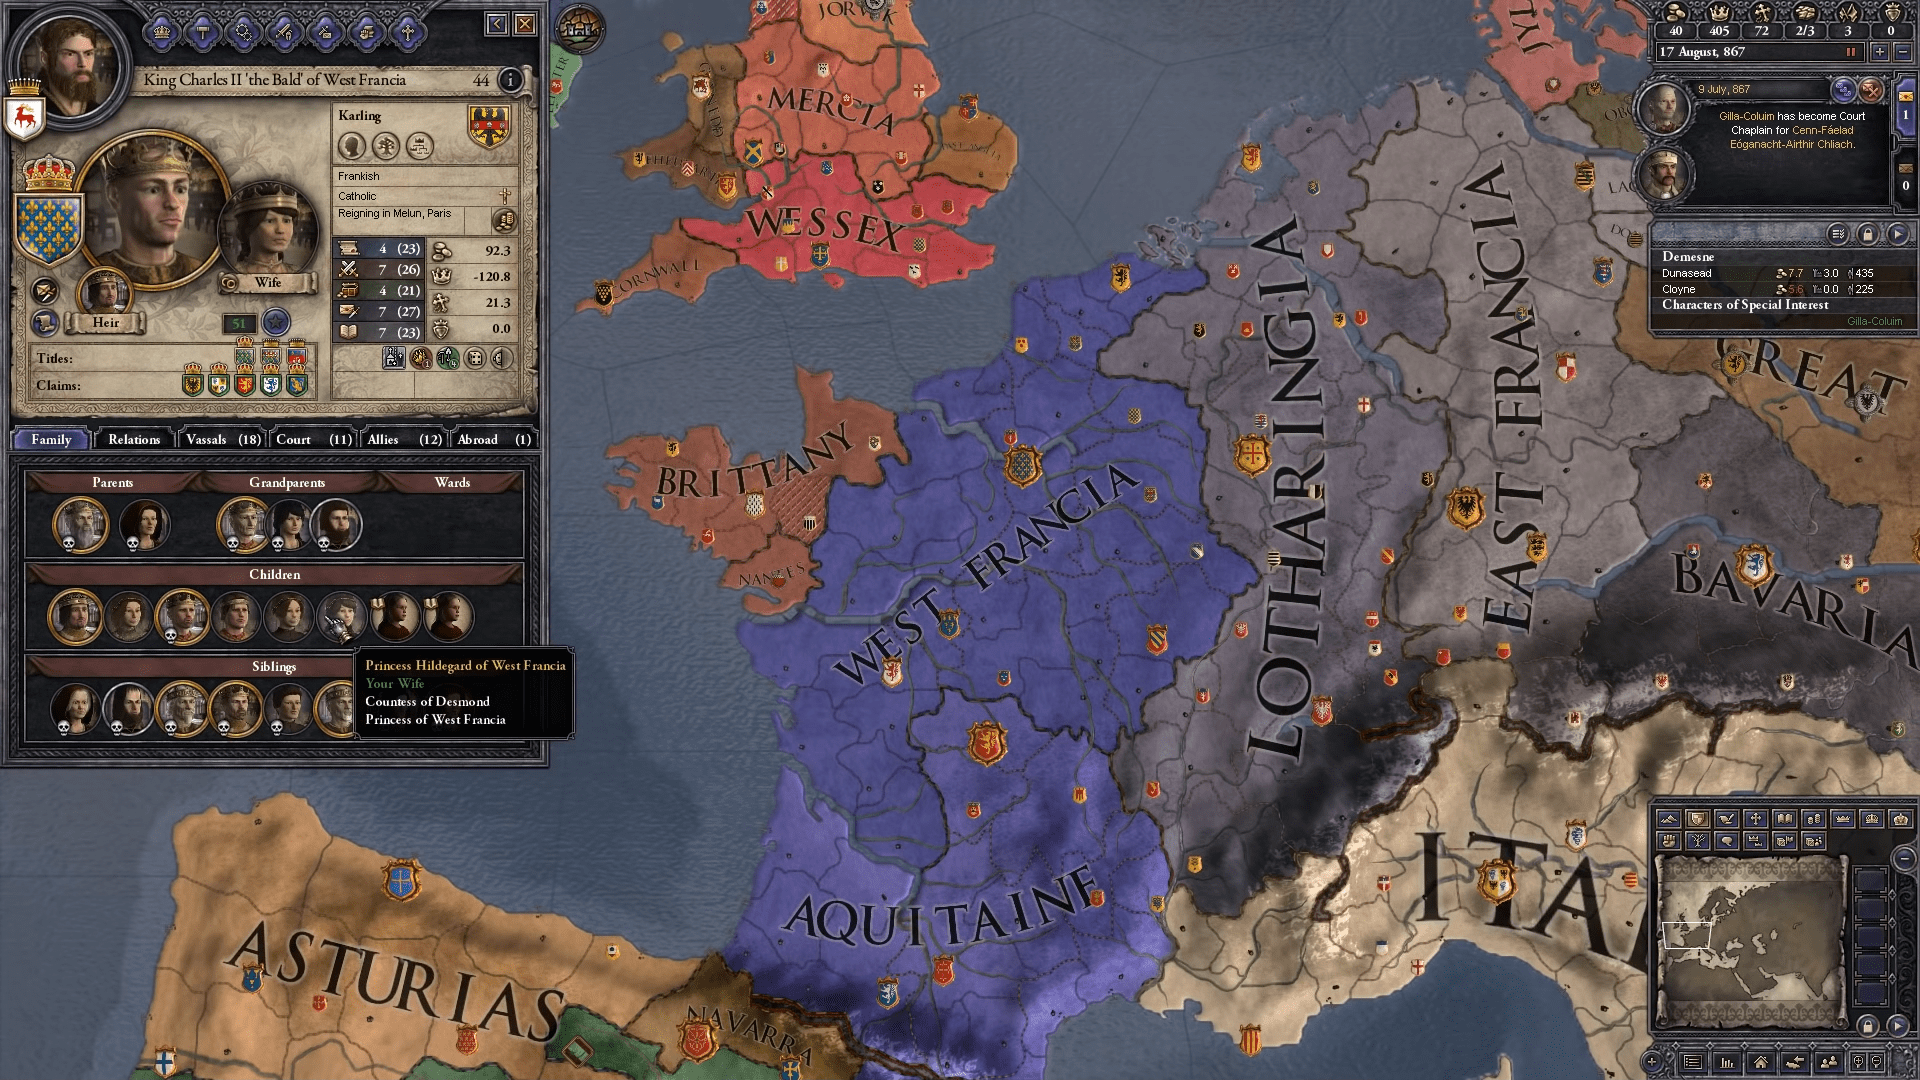 Crusader Kings II Is Offering The Sword Of Islam For Free On Steam This Weekend If You Download It